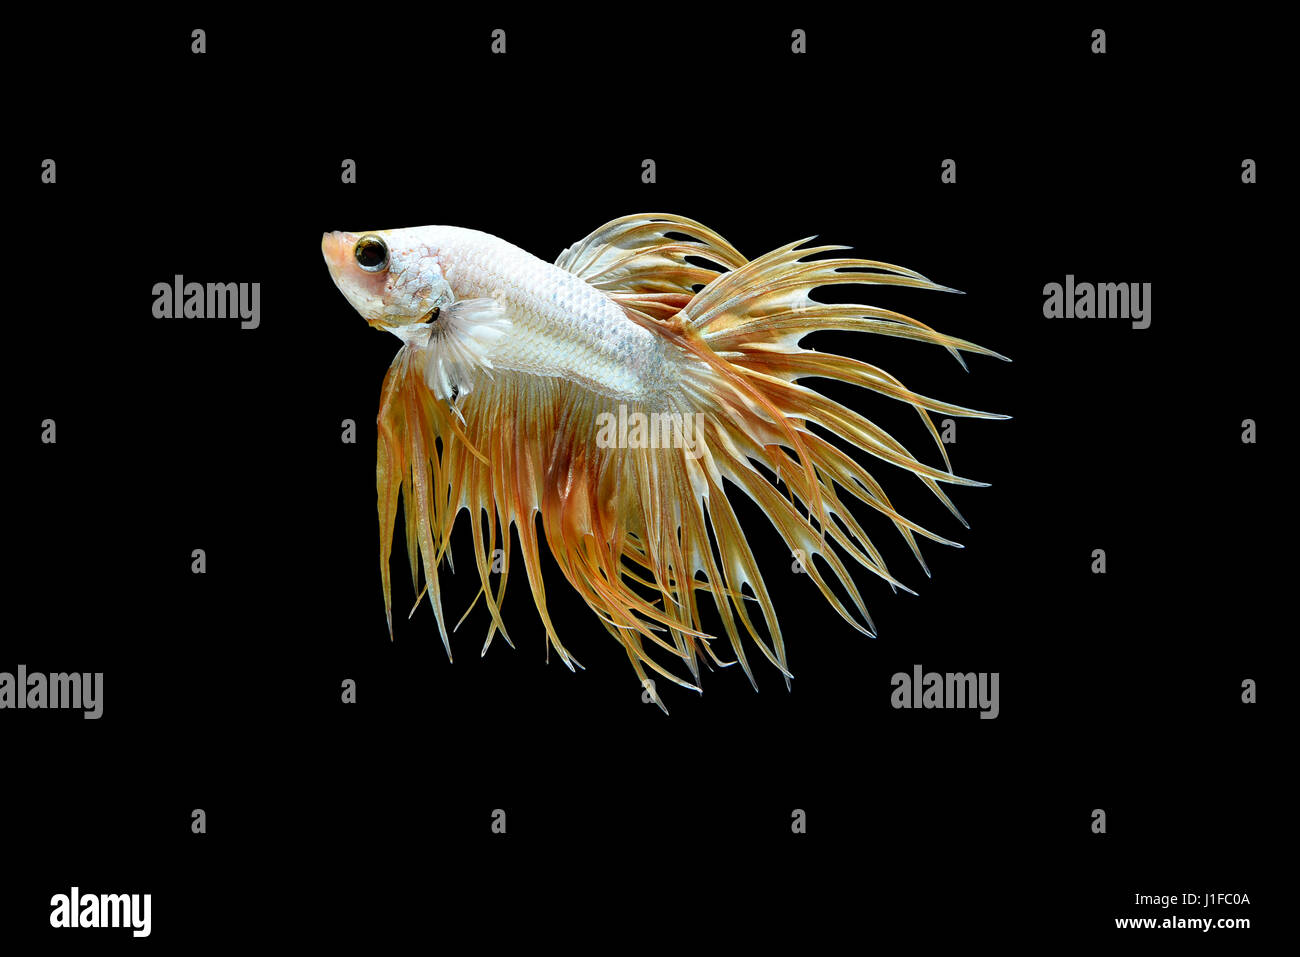 Male crown tail Betta splendens or siamese fighting fish isolated on black background, Plakat Thailand - Stock Image